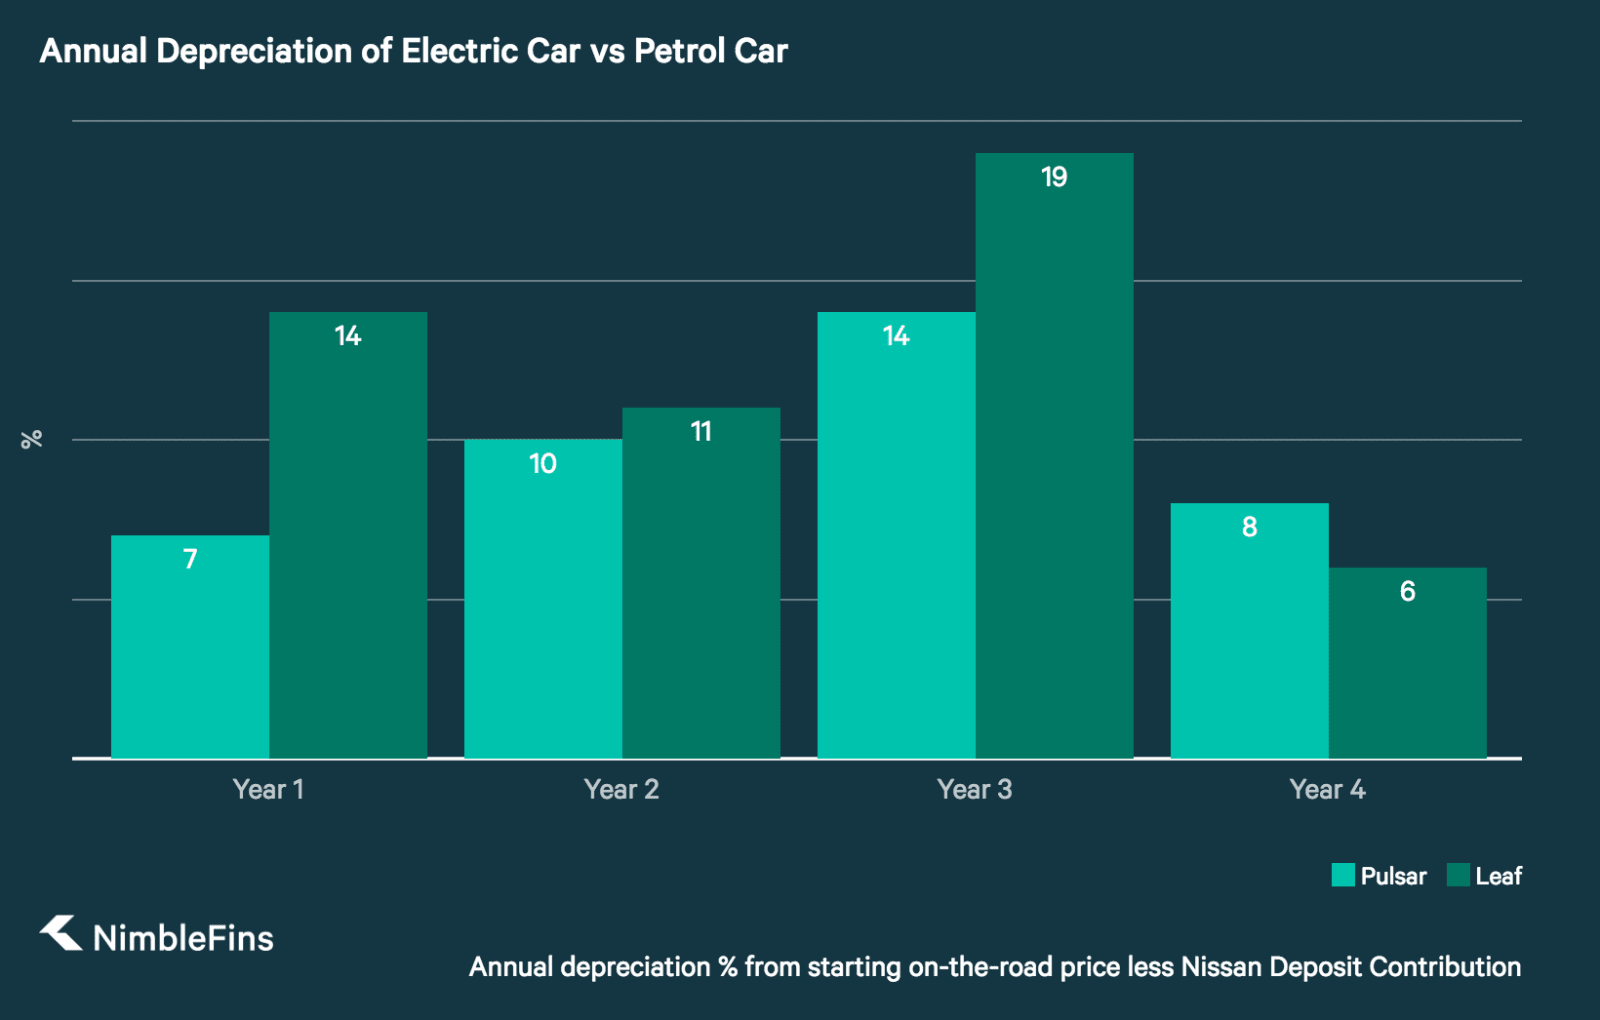 column chart showing annual depreciation of electric car Nissan Leaf vs ICE Nissan Pulsar in year 1, 2, 3 and 4